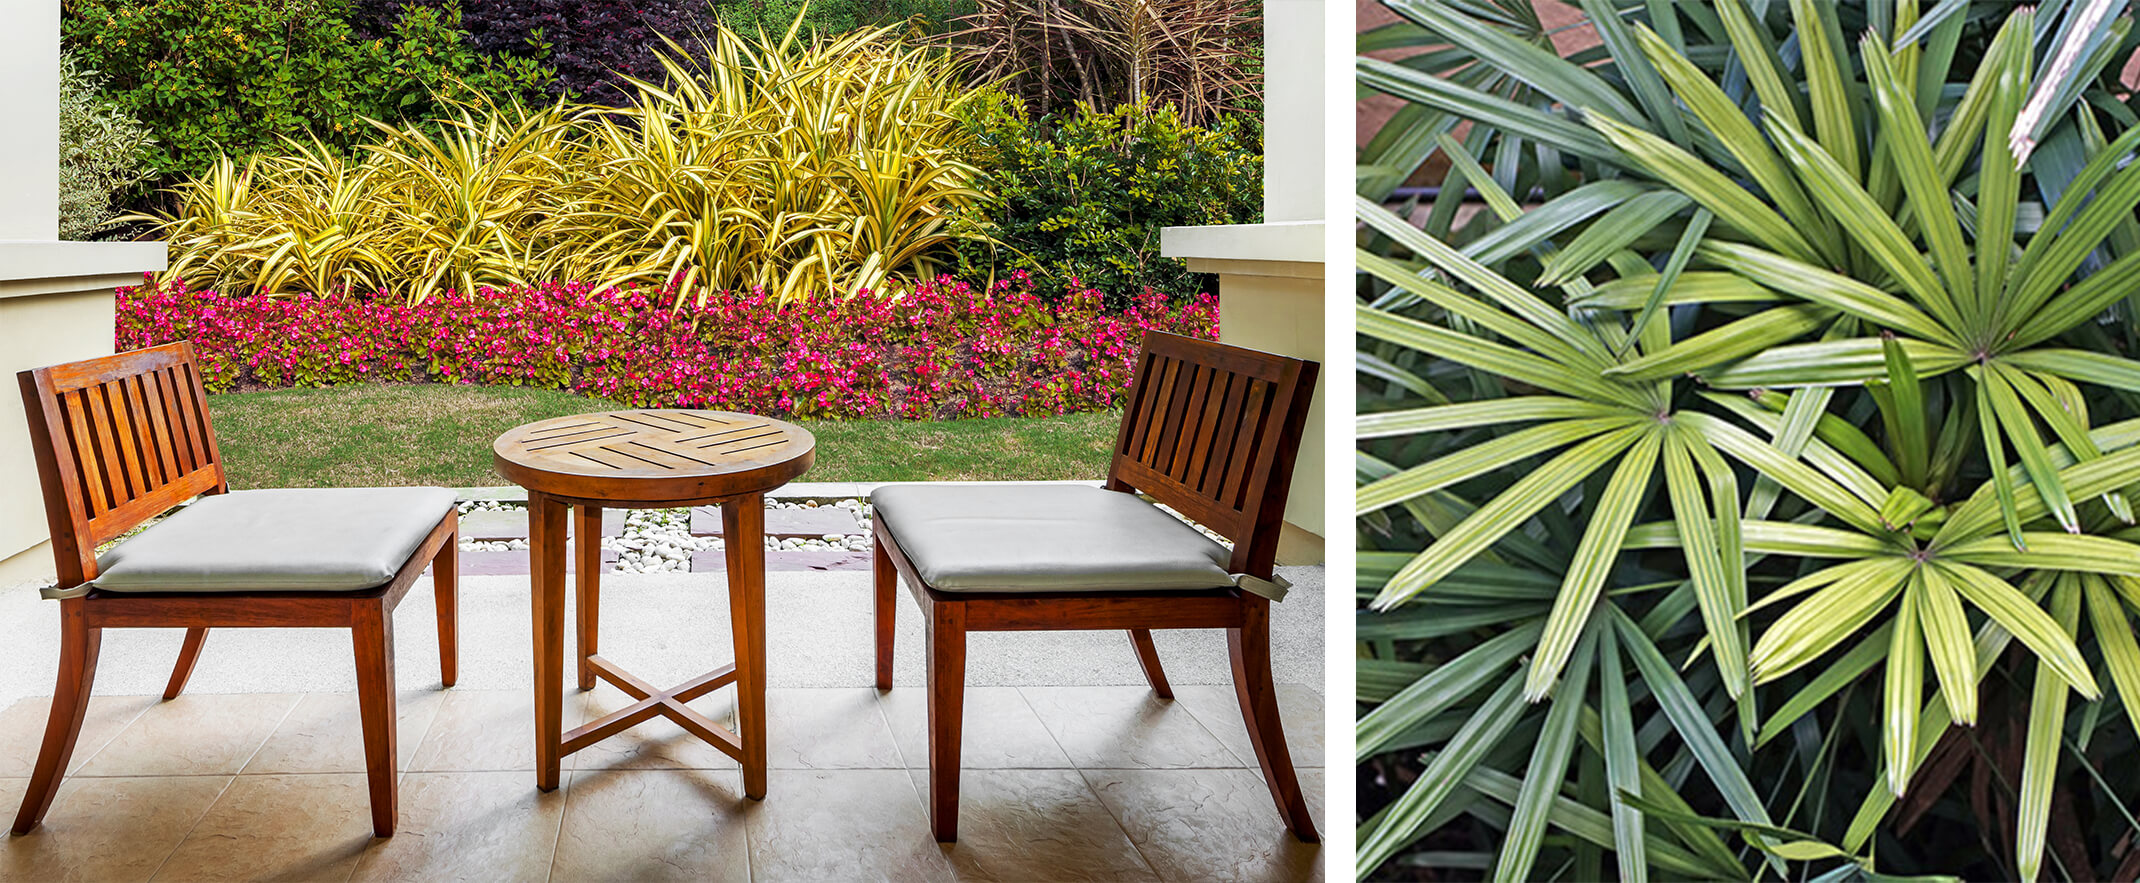 2 images: wooden patio seating and table with colorful assortment of various shade plants in background (including Dracaena), plus a closeup photo of Raphis Palm